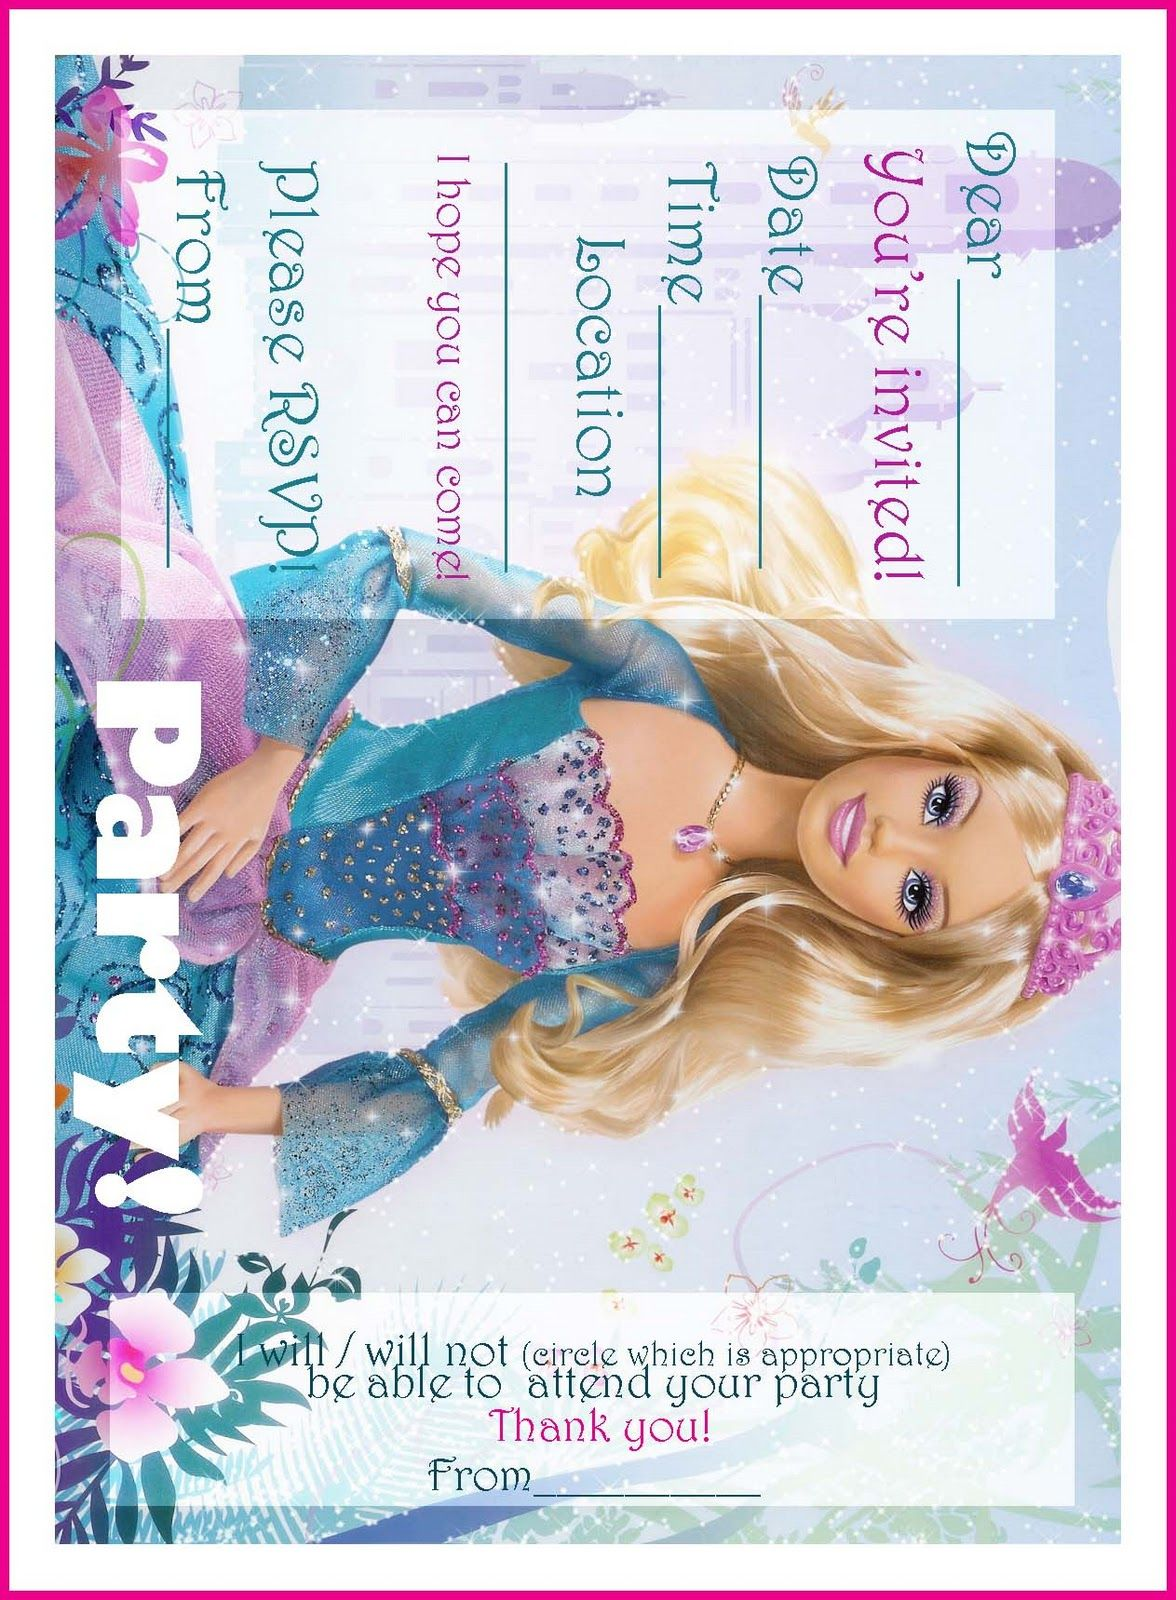 barbie coloring pages printable princess barbie birthday barbie coloring pages printable princess barbie birthday party invitations